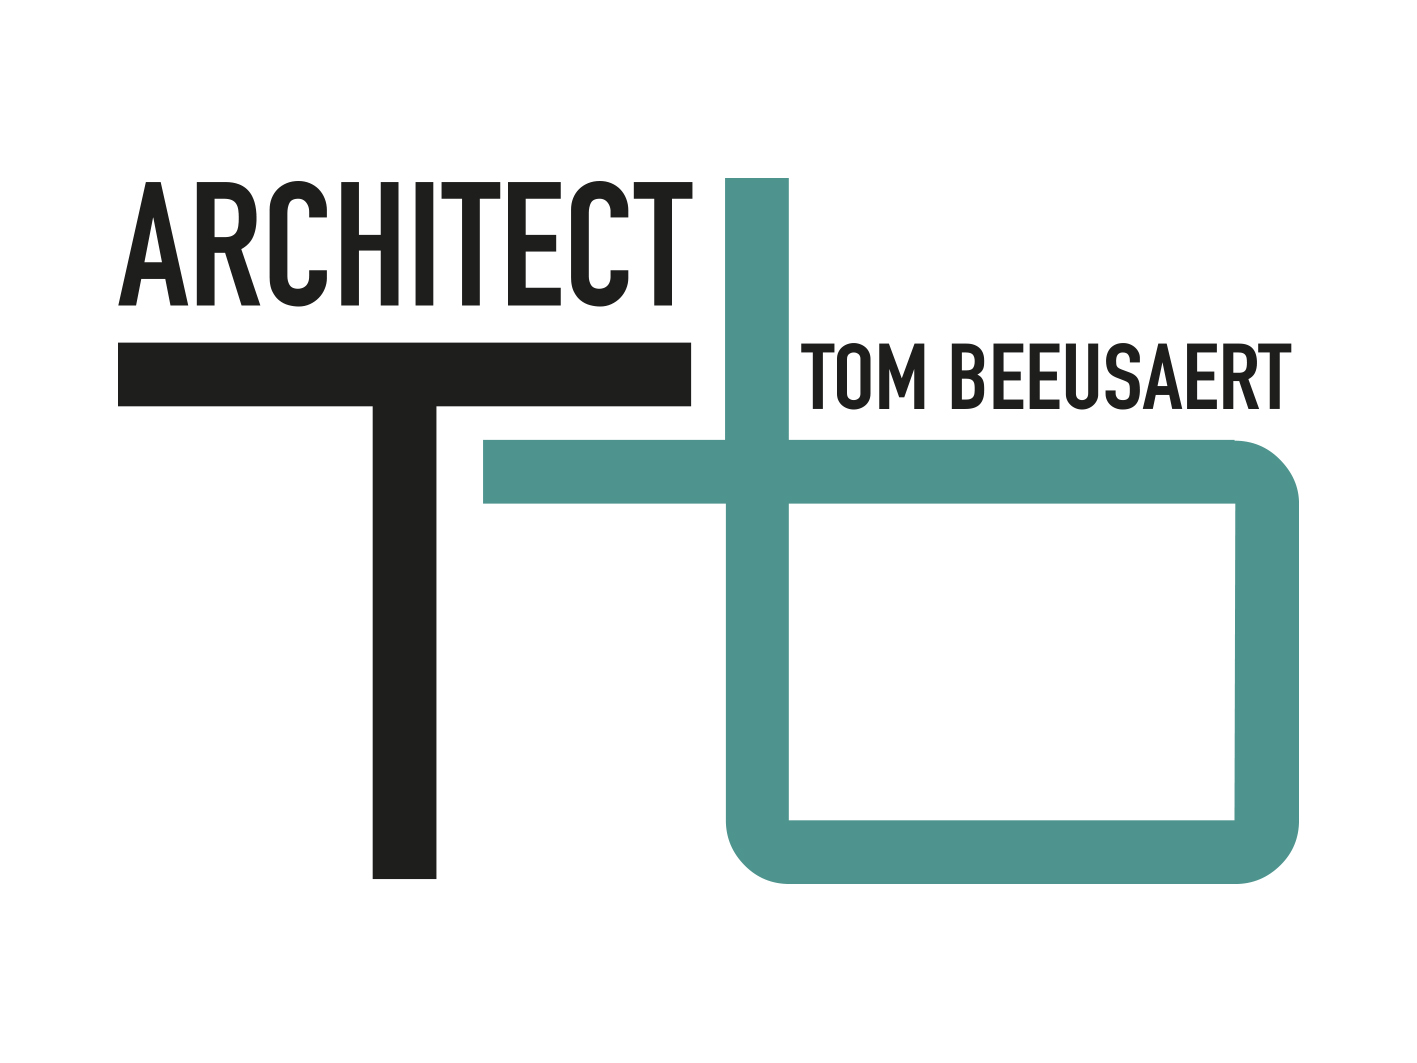 architect tom beeusaert